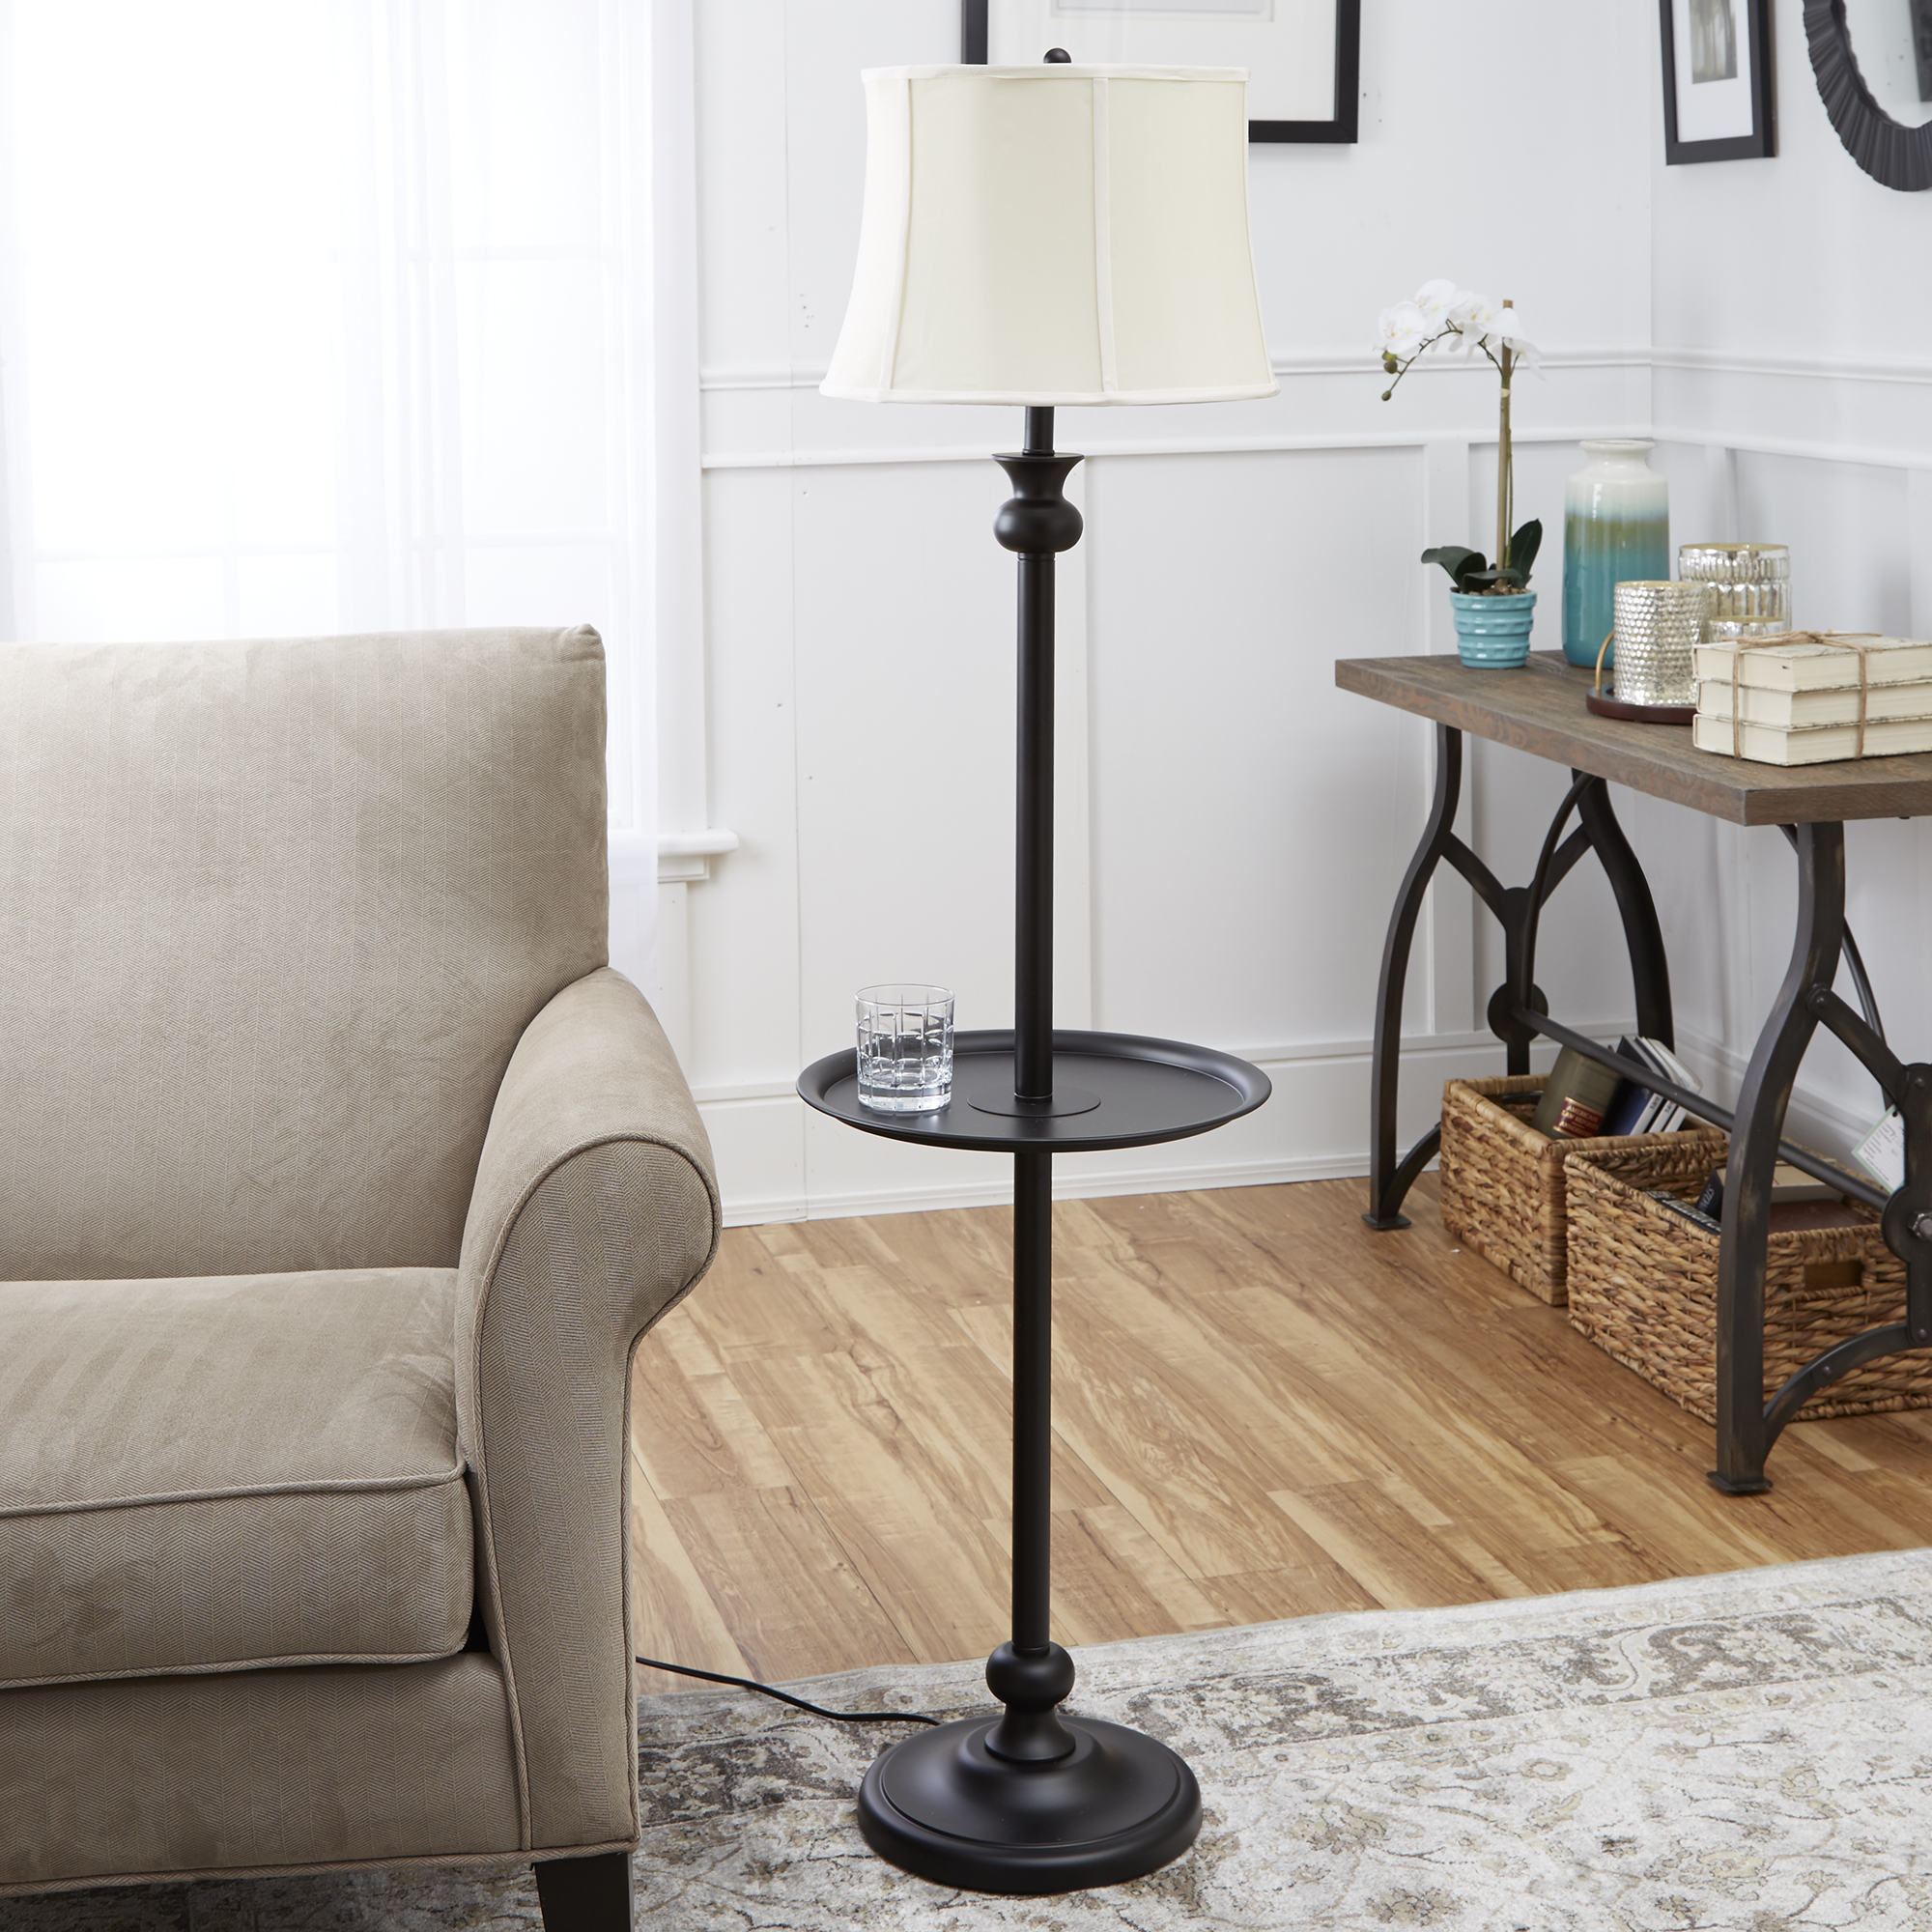 Better Homes and Gardens Black Floor Lamp with Tray, CFL Bulb Included